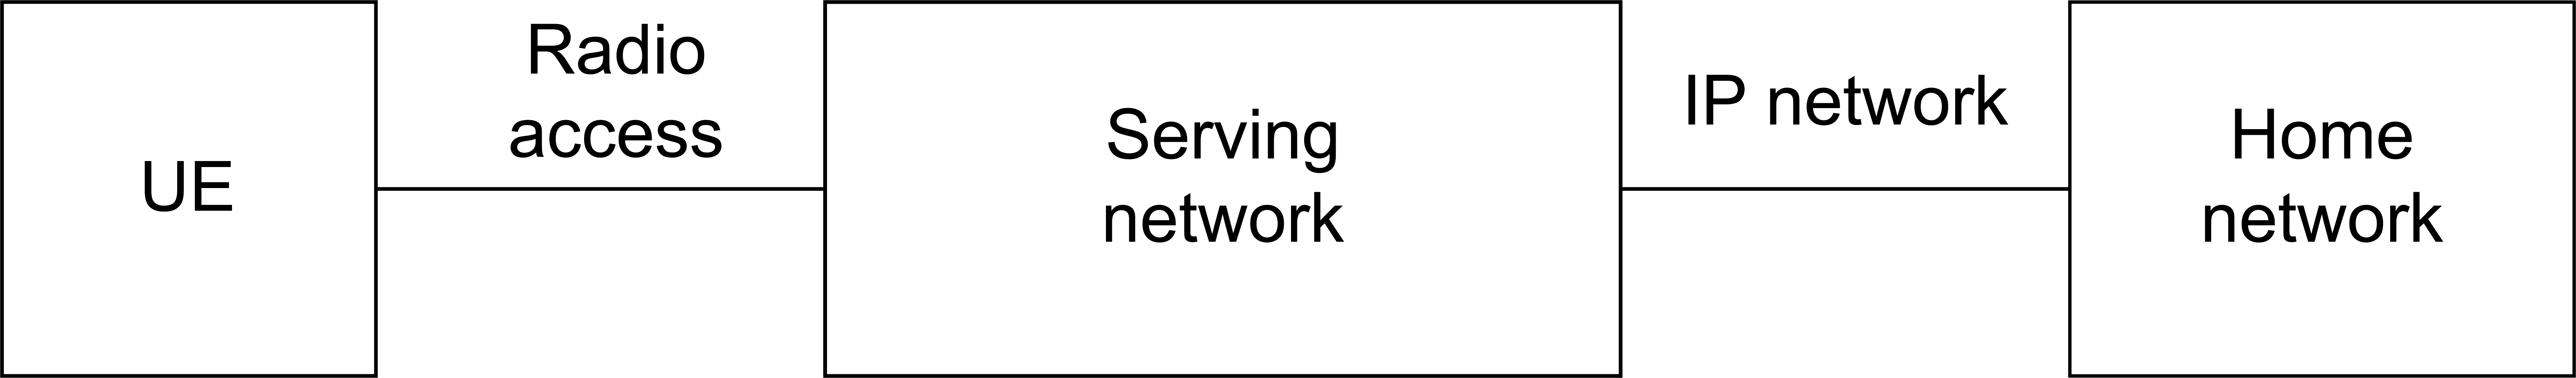 Figure 1 – Cellular Network Architecture